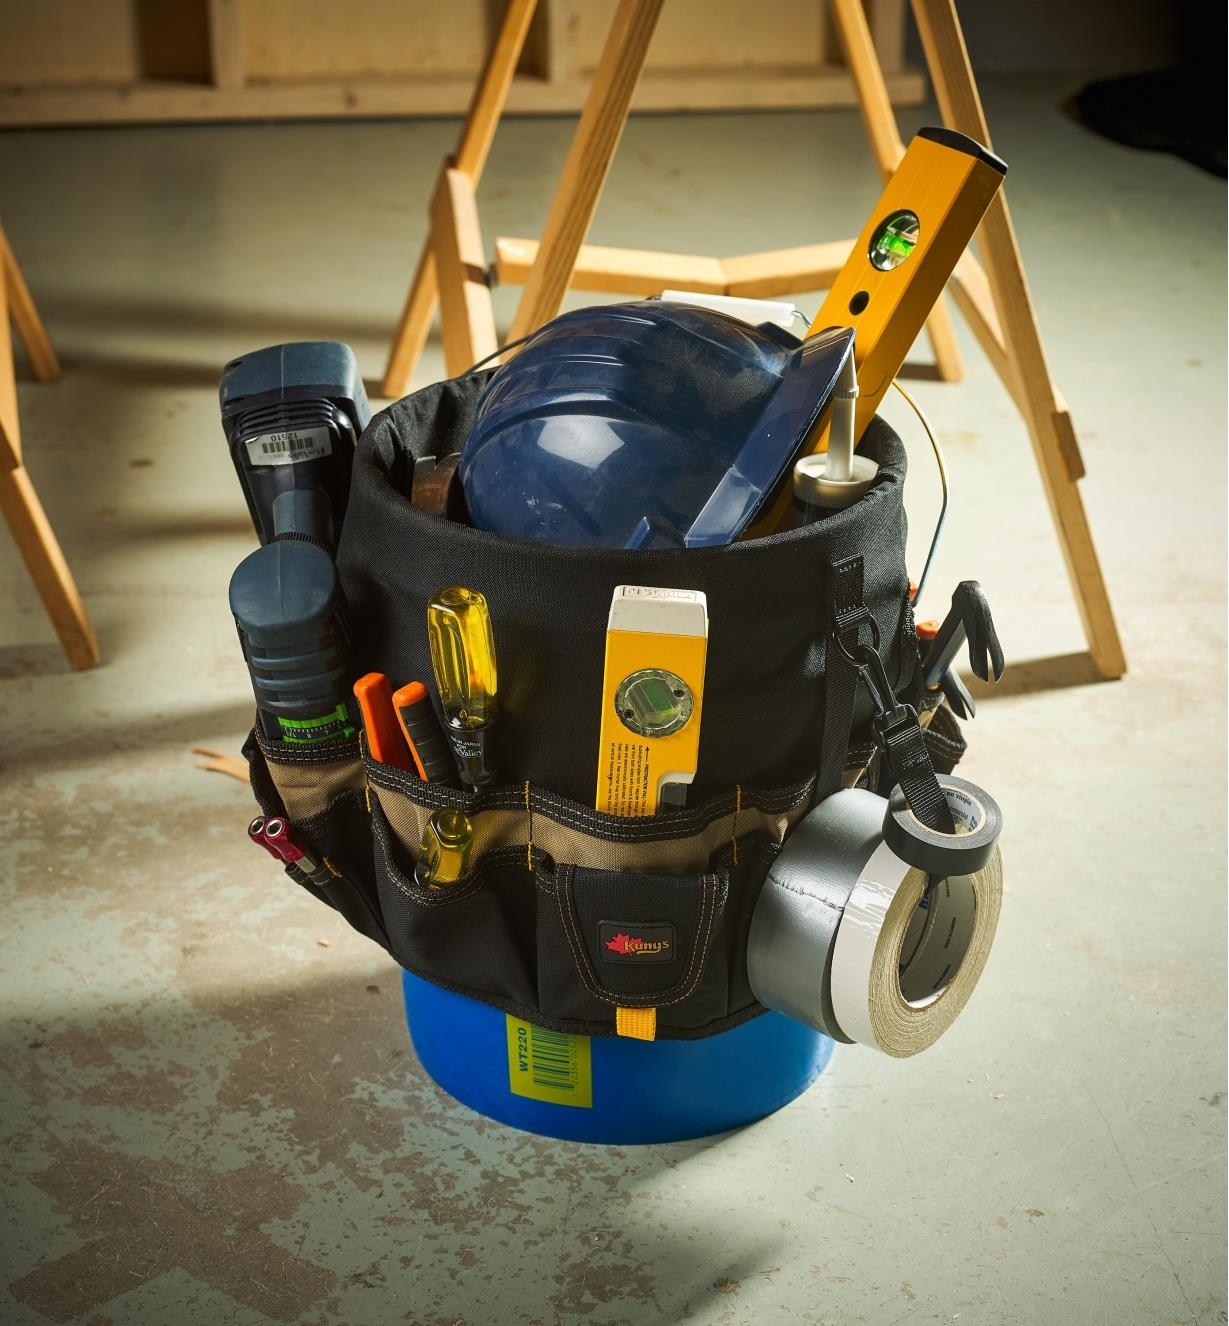 The 48-pocket tool carrier filled with tools and mounted on a bucket